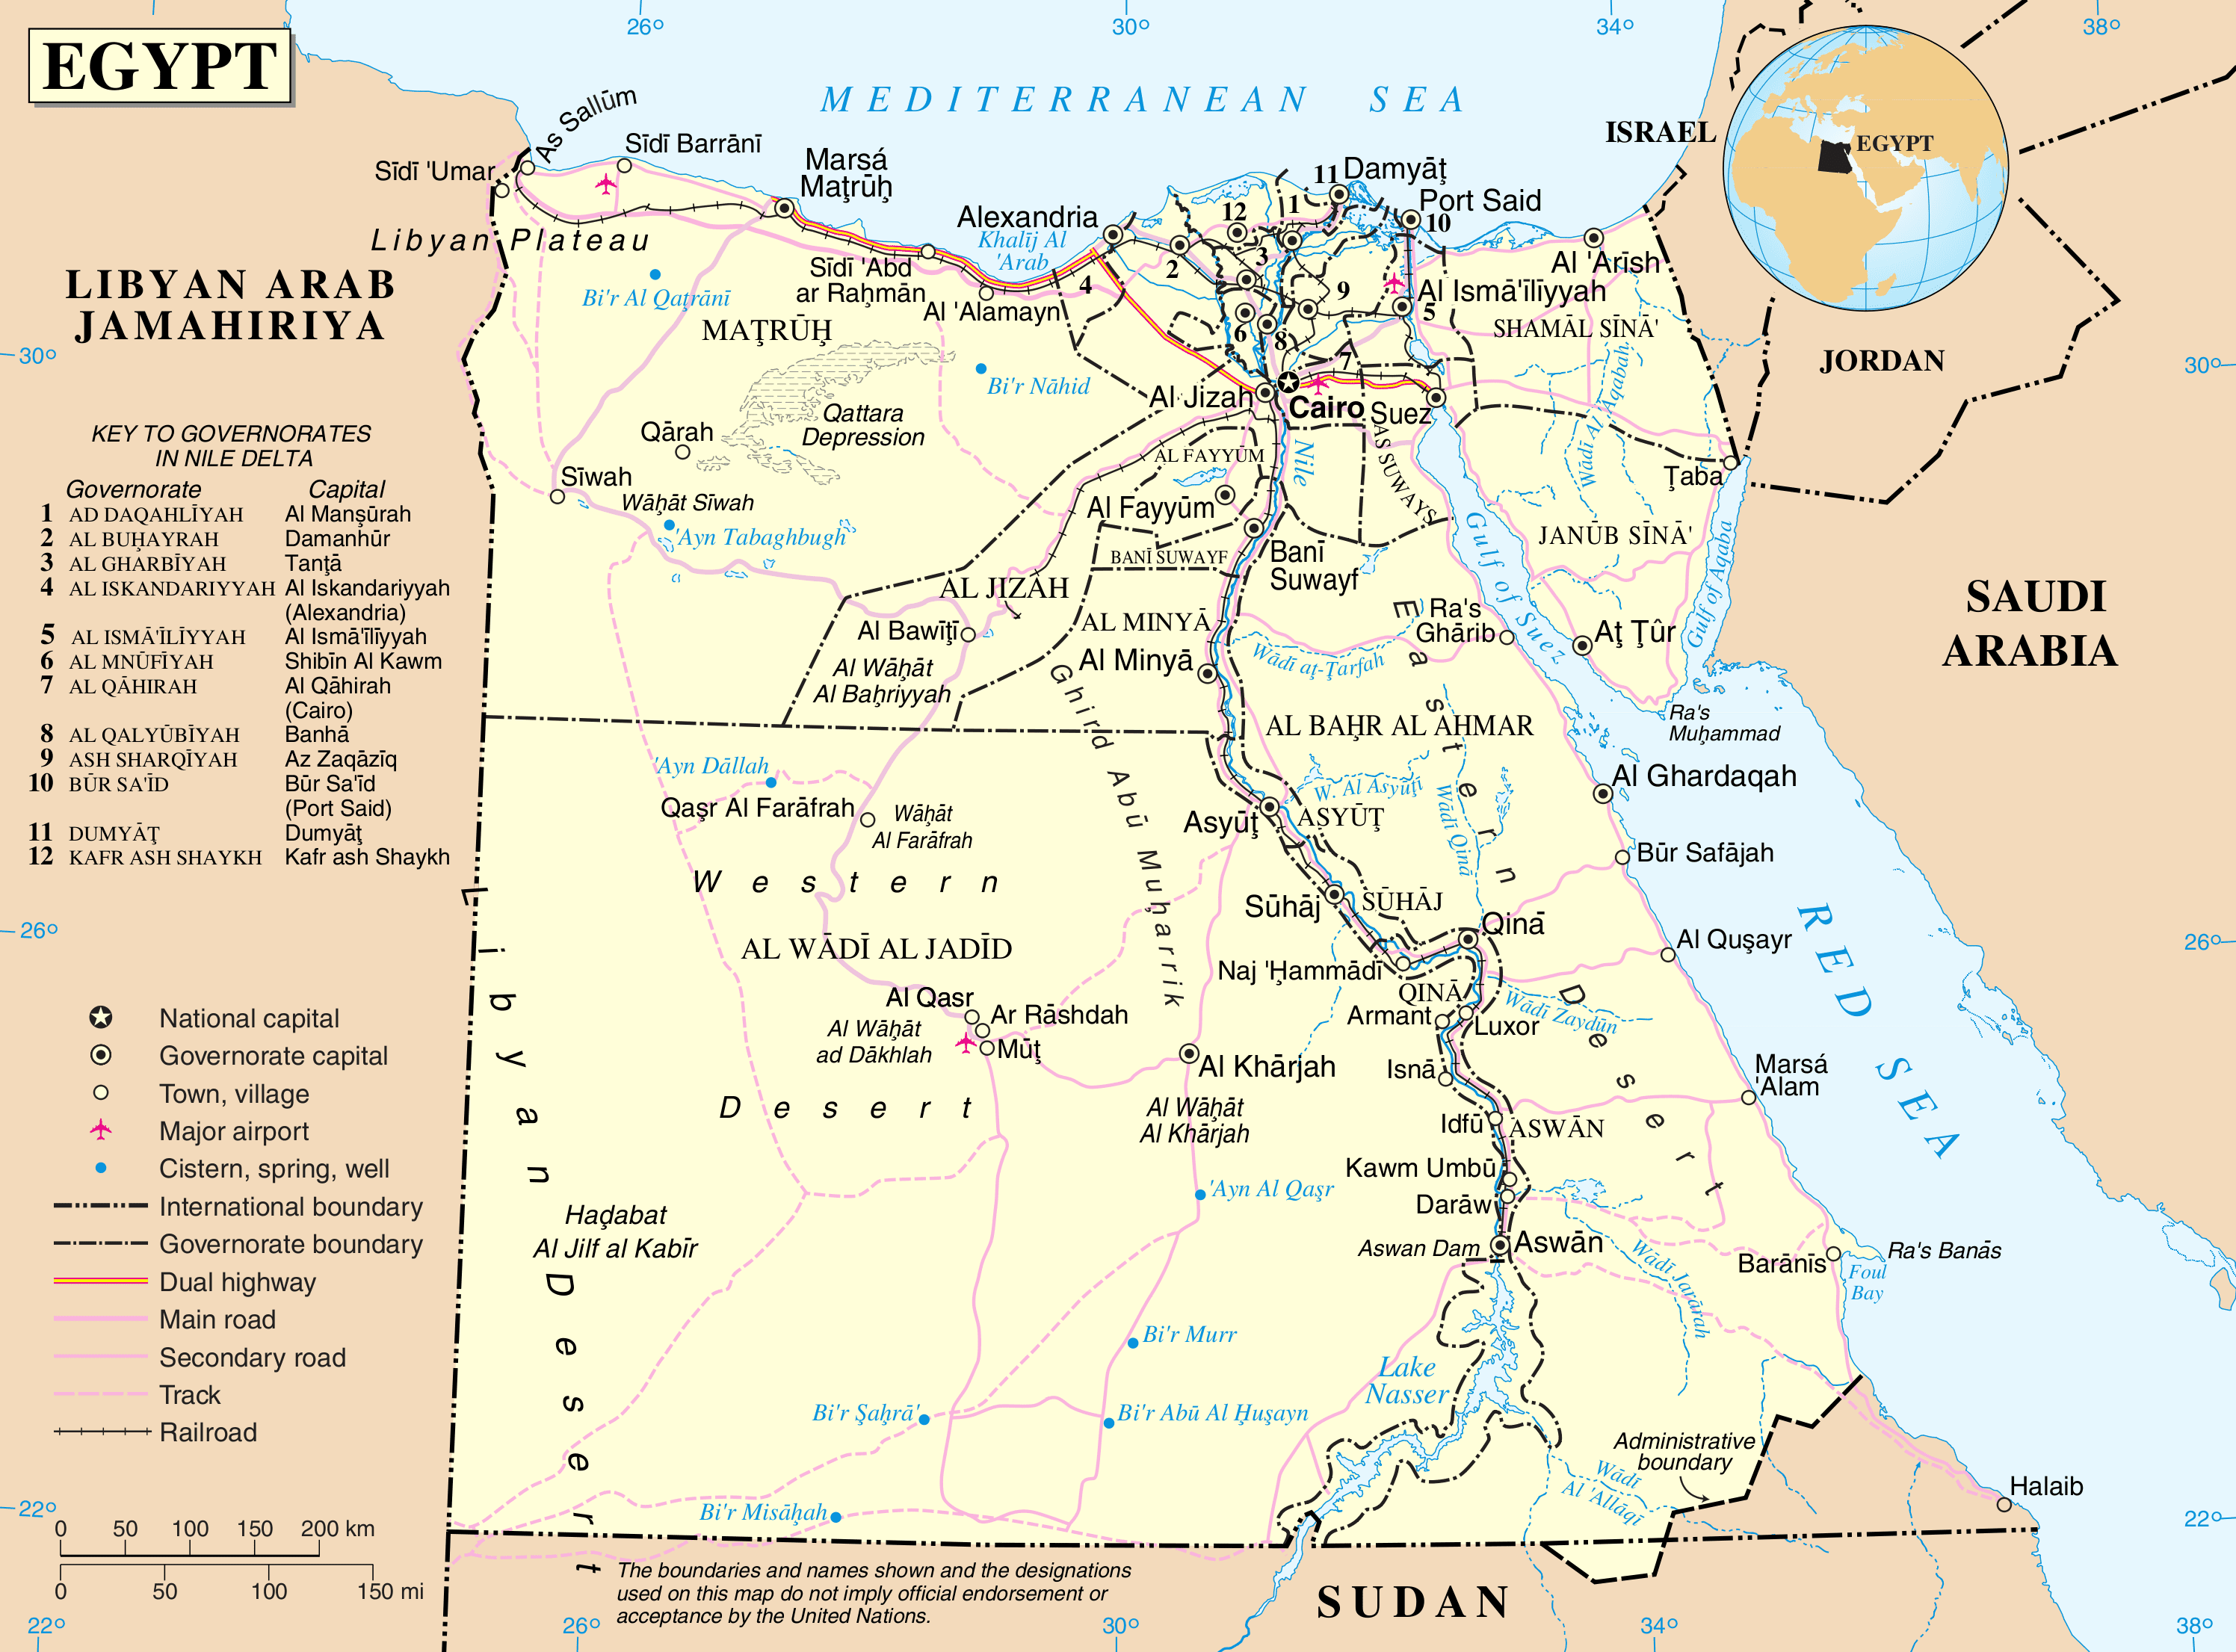 egypt travel guide essential facts and information - egypt country map essential information